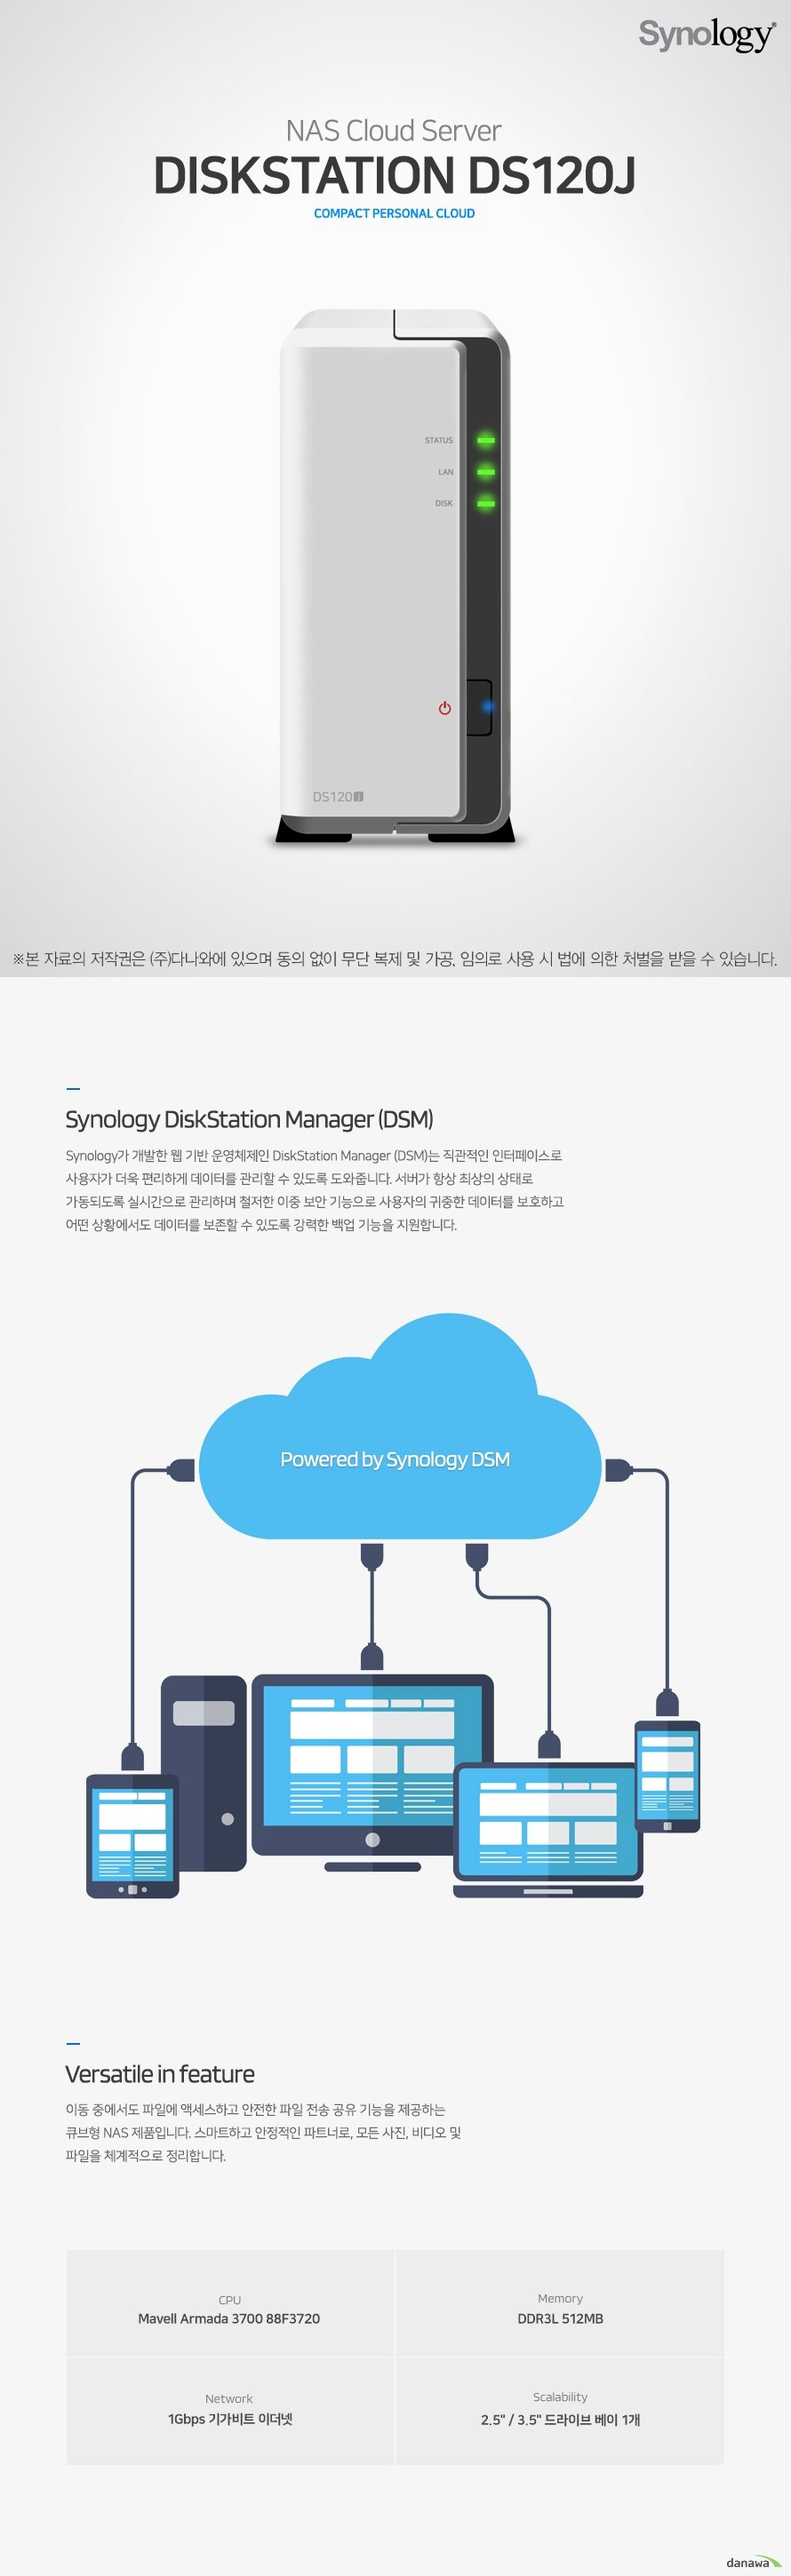 Synology DS120j (1TB)